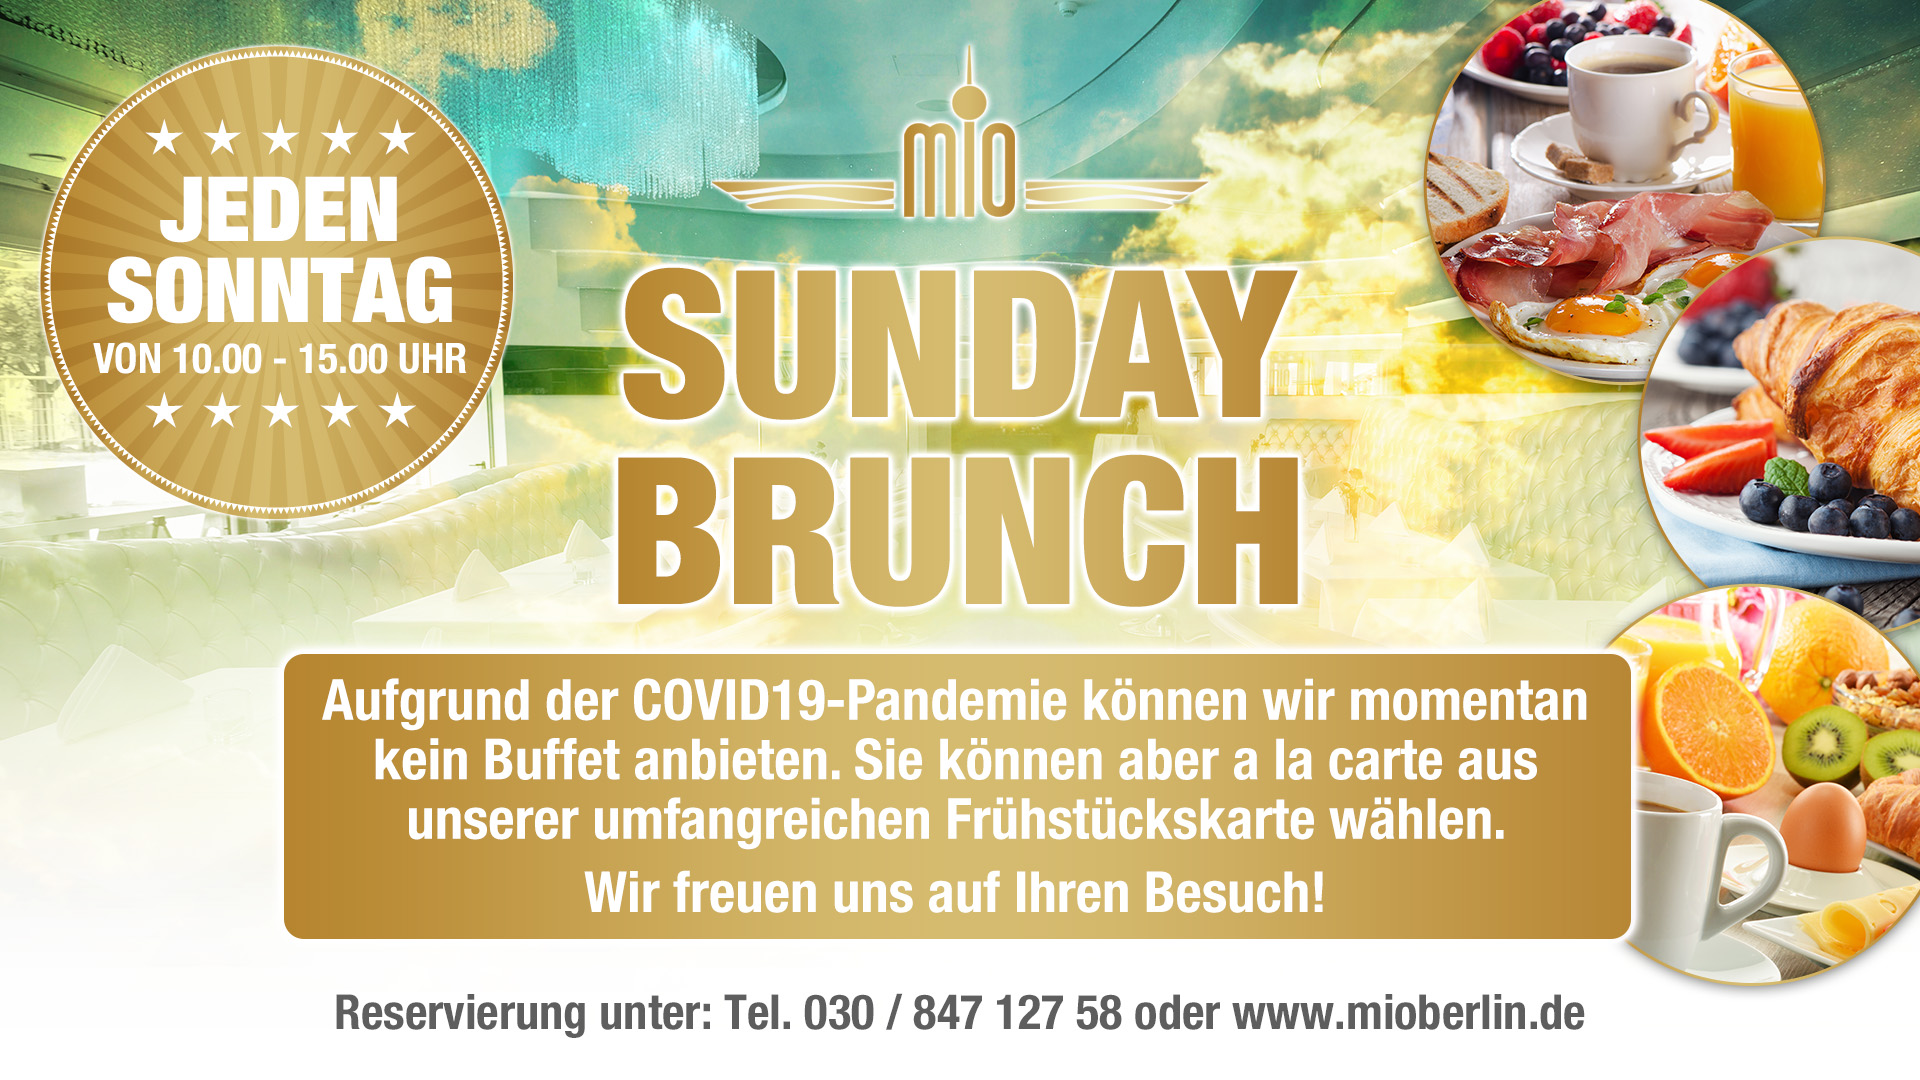 MIO-Sunday-Brunch-2020-FB-Screen-1920x1080